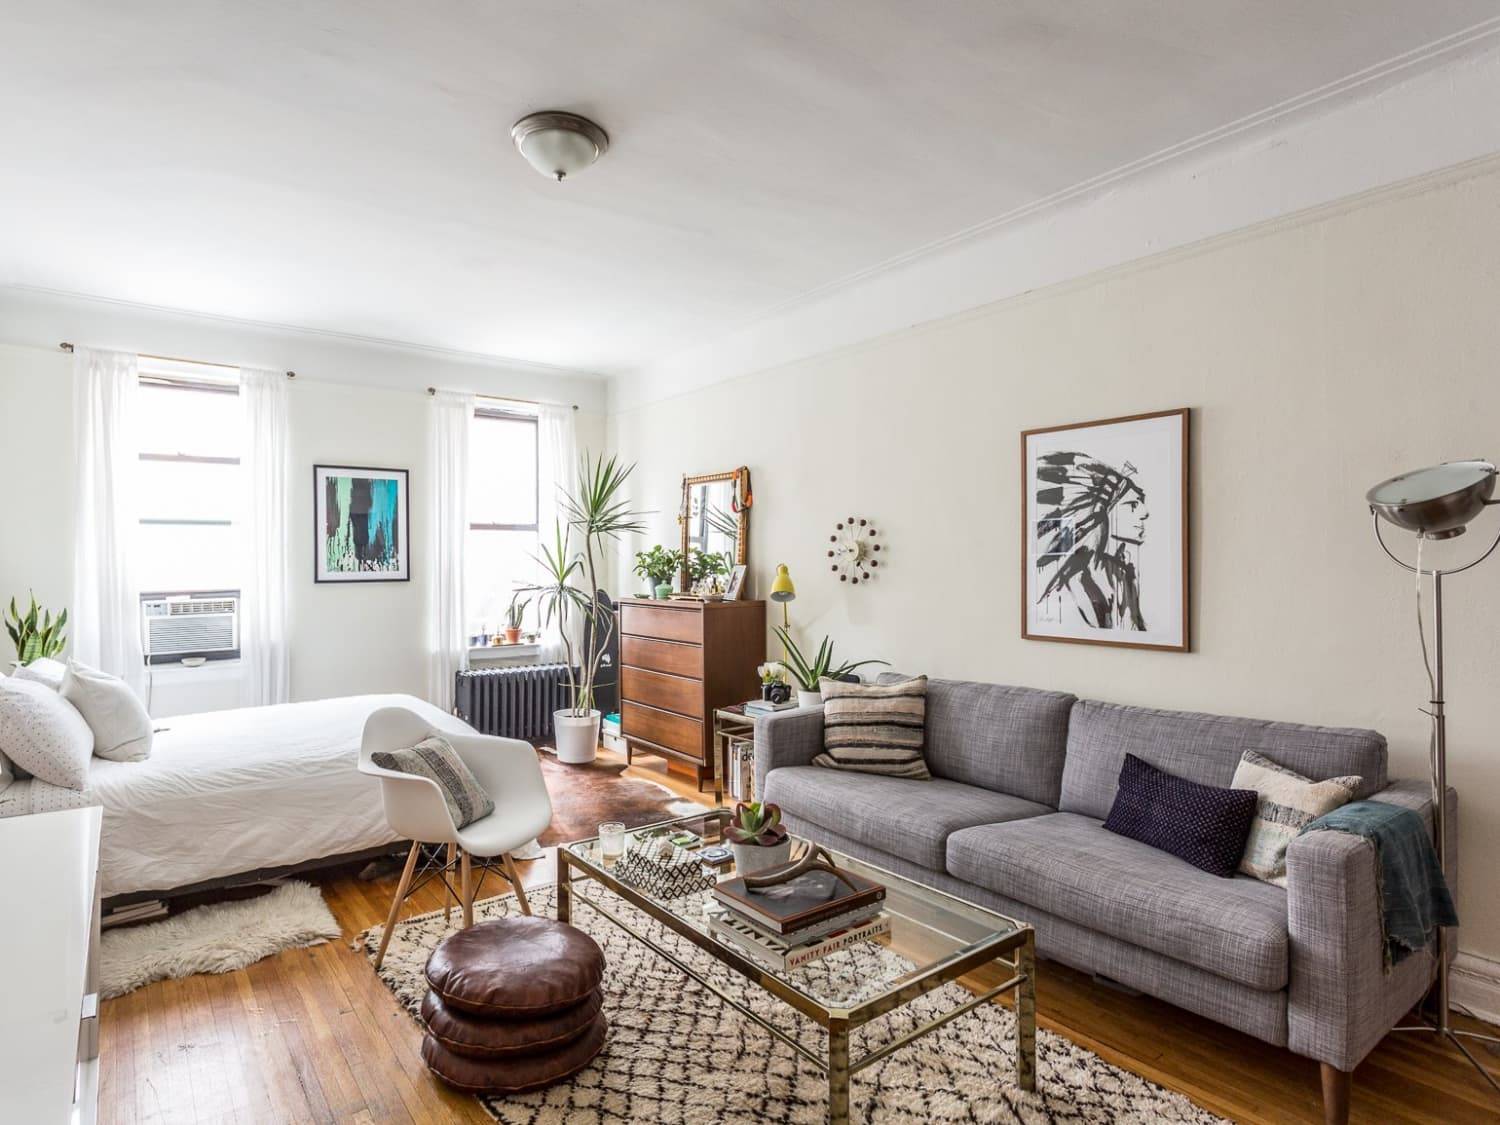 Sneaky Little Design Secrets Of Successful Small Spaces Apartment Therapy